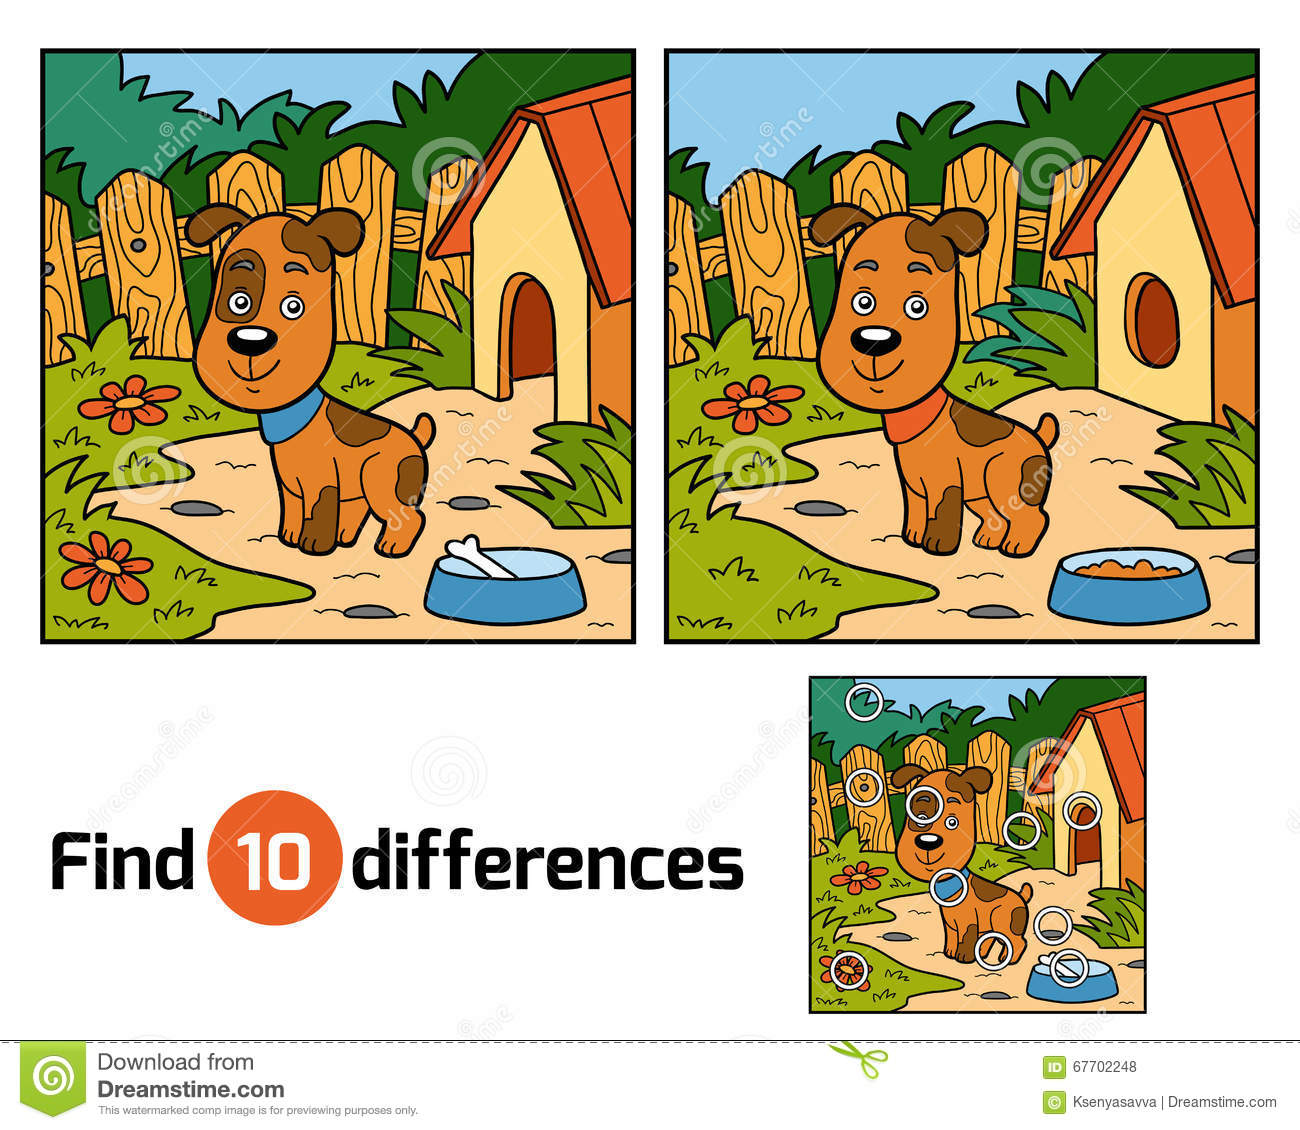 Brain Teasers: 12 Free 'Spot the Difference' Puzzles Find differences between two pictures for kids